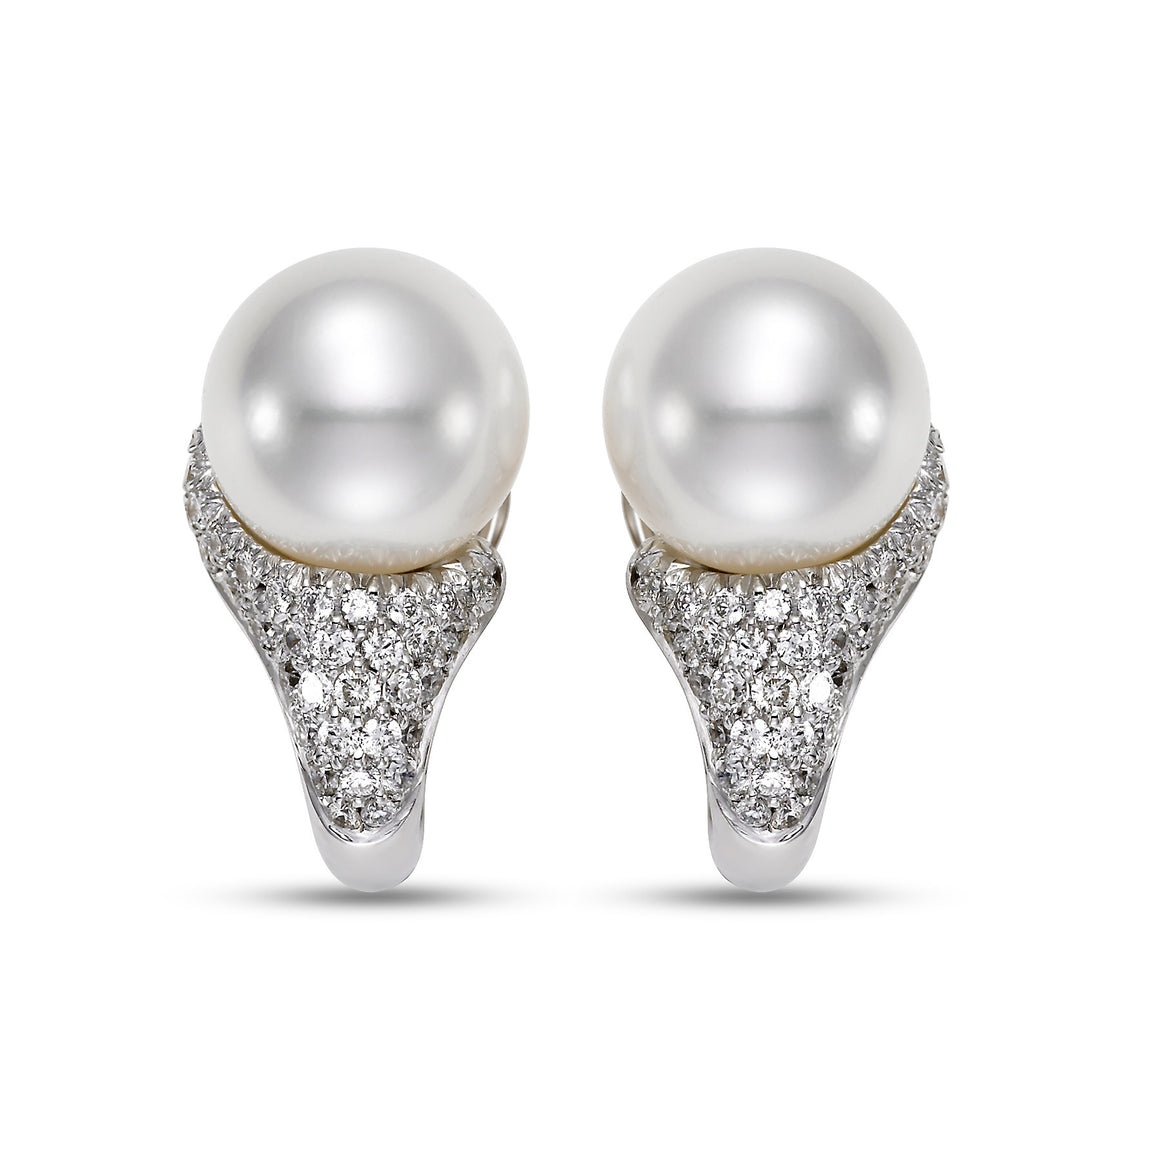 South Sea Pearl 18k Diamond Earrings by Mastoloni - Talisman Collection